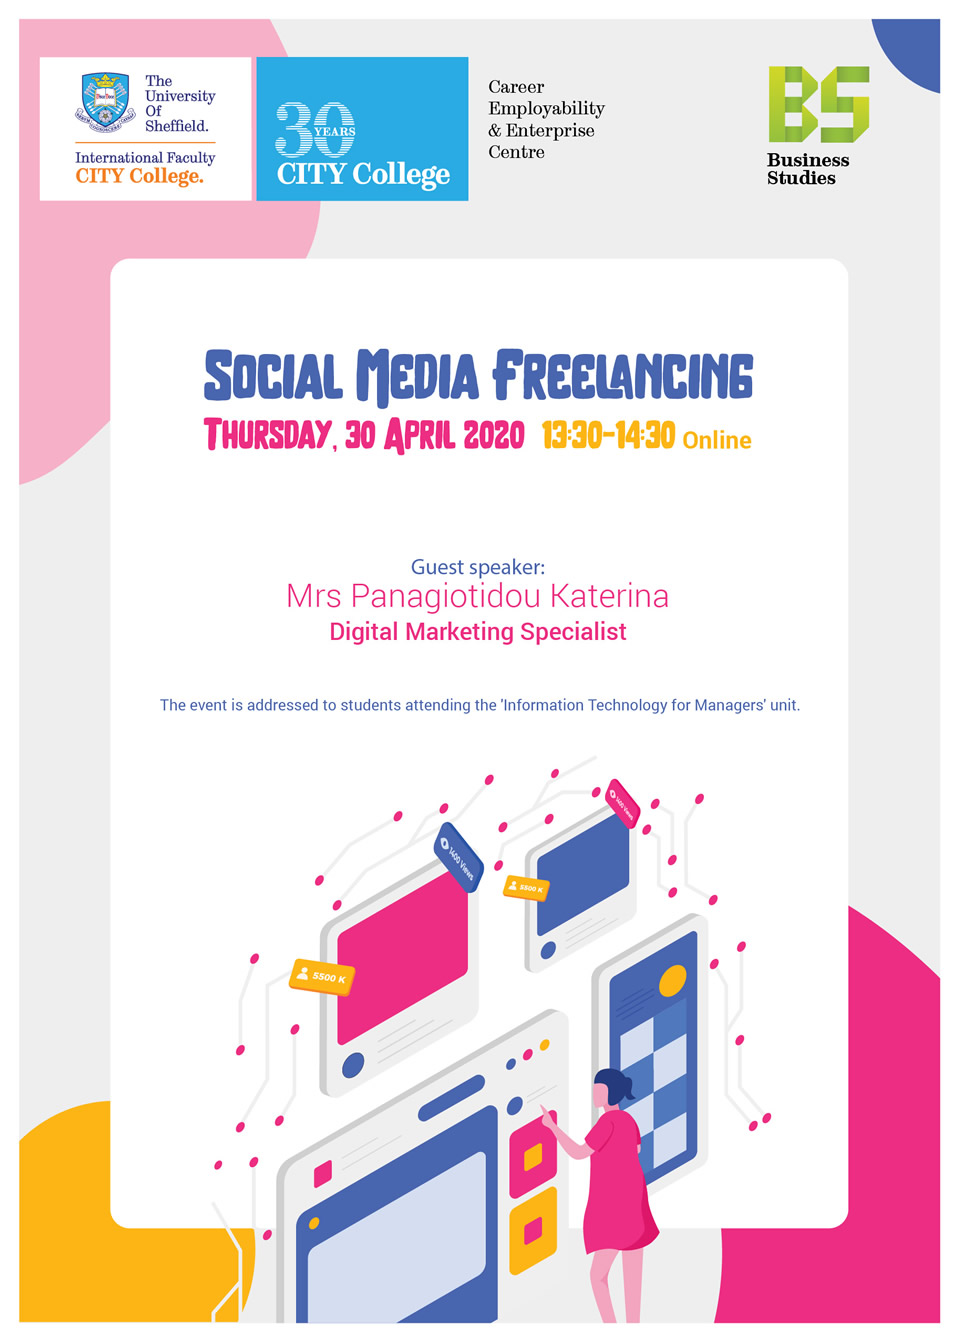 Social Media Freelancing Seminar Online by CITY College Business Administration and Economics Department Department